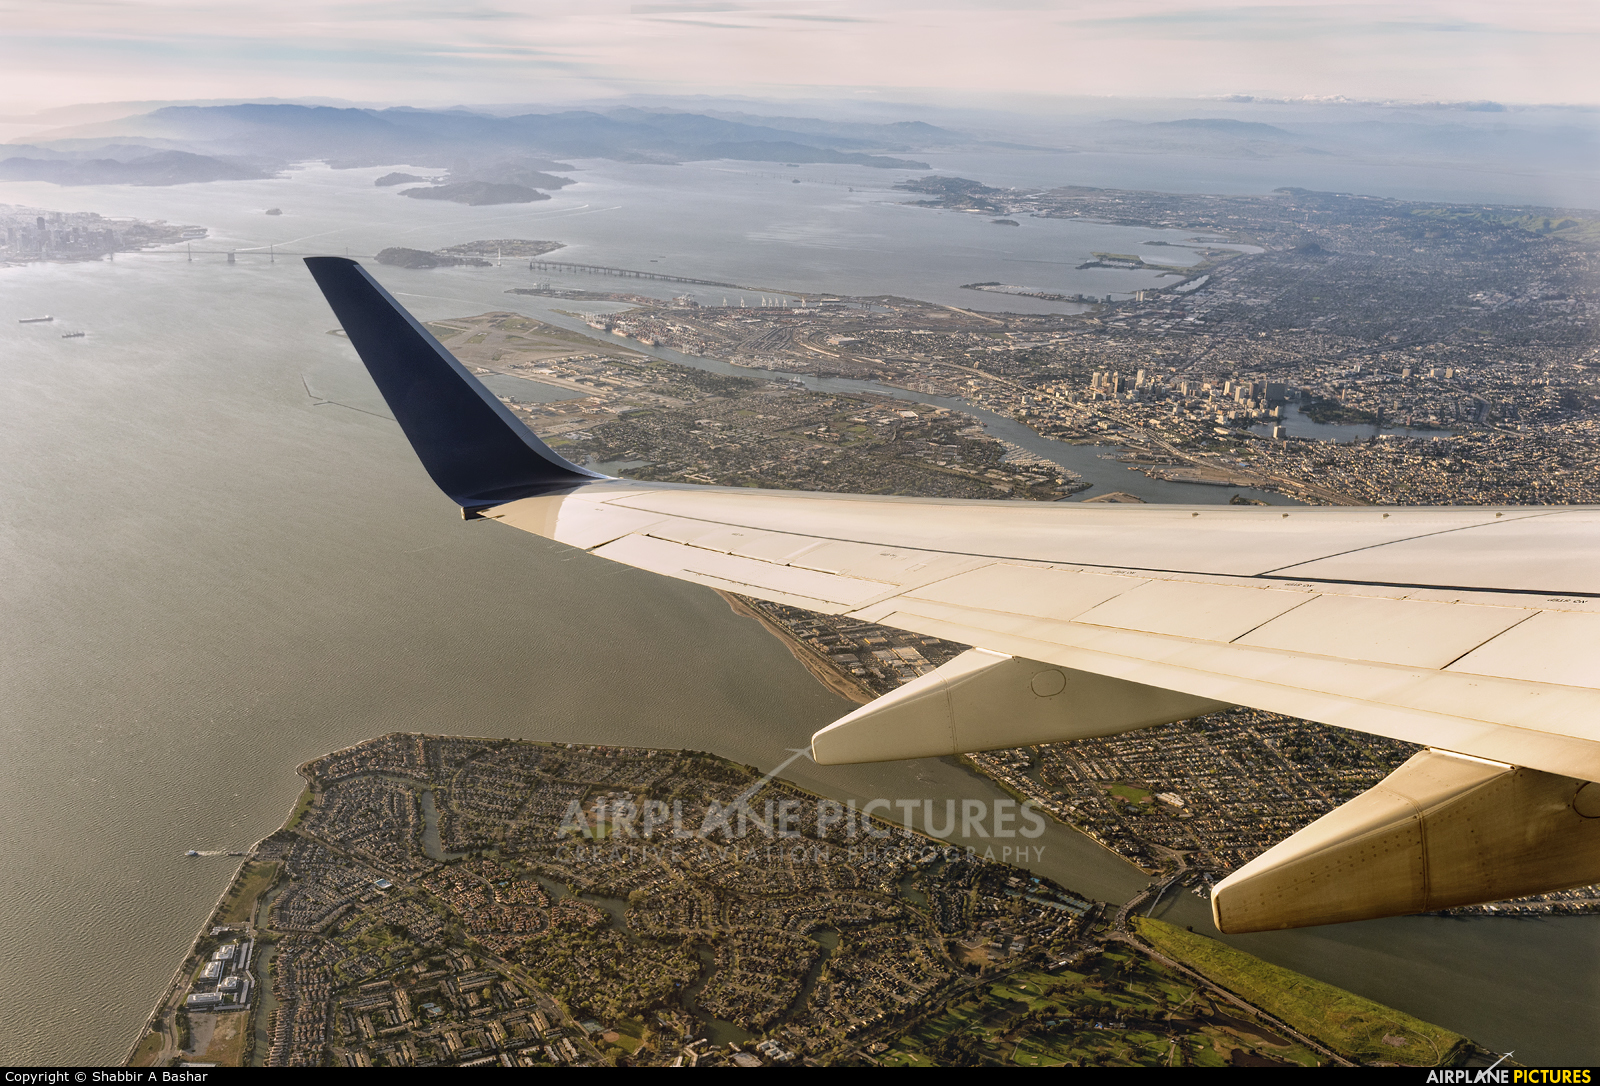 Delta Air Lines N823DN aircraft at In Flight - California